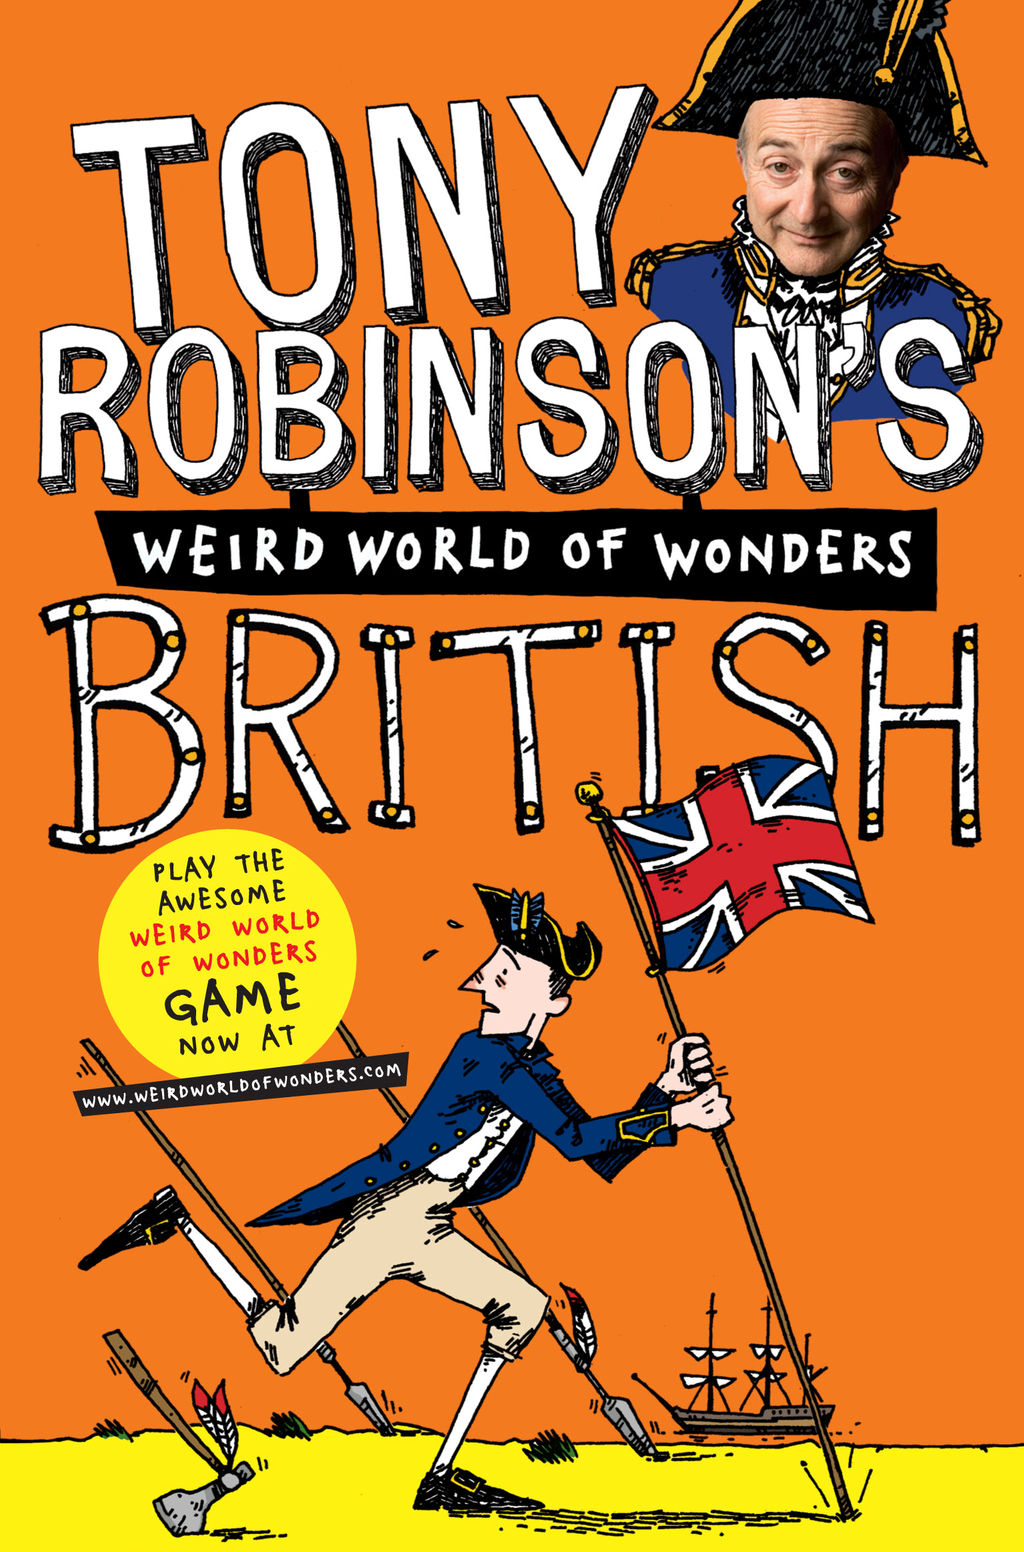 Tony Robinson's Weird World of Wonders! British By: Tony Robinson